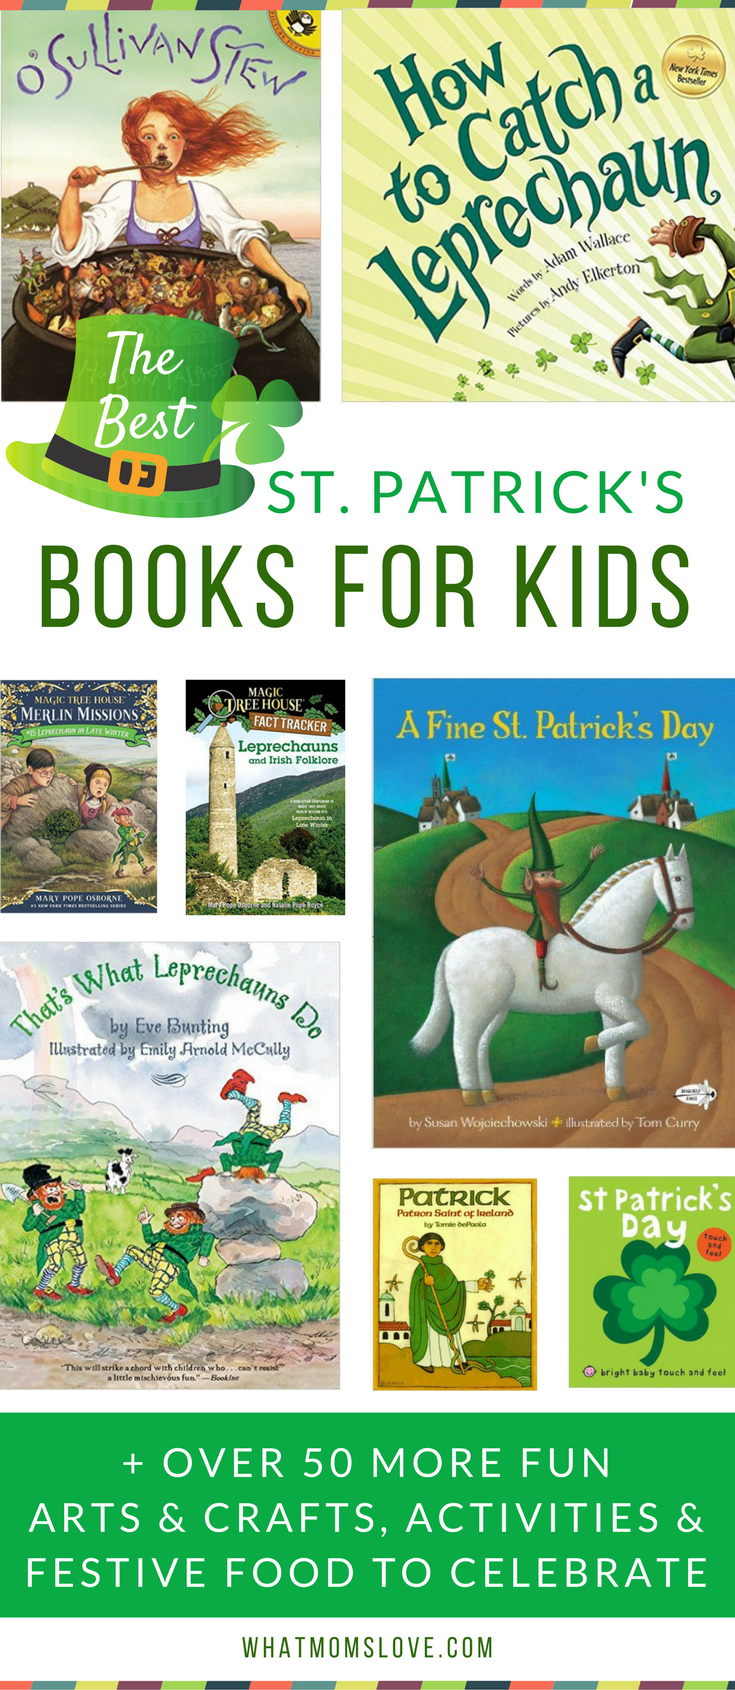 The Best St Patricks Day Books For Kids - great suggestions for Irish themed reading for toddlers, preschoolers and up! Plus fun St Pattys Day crafts, food and activity ideas!